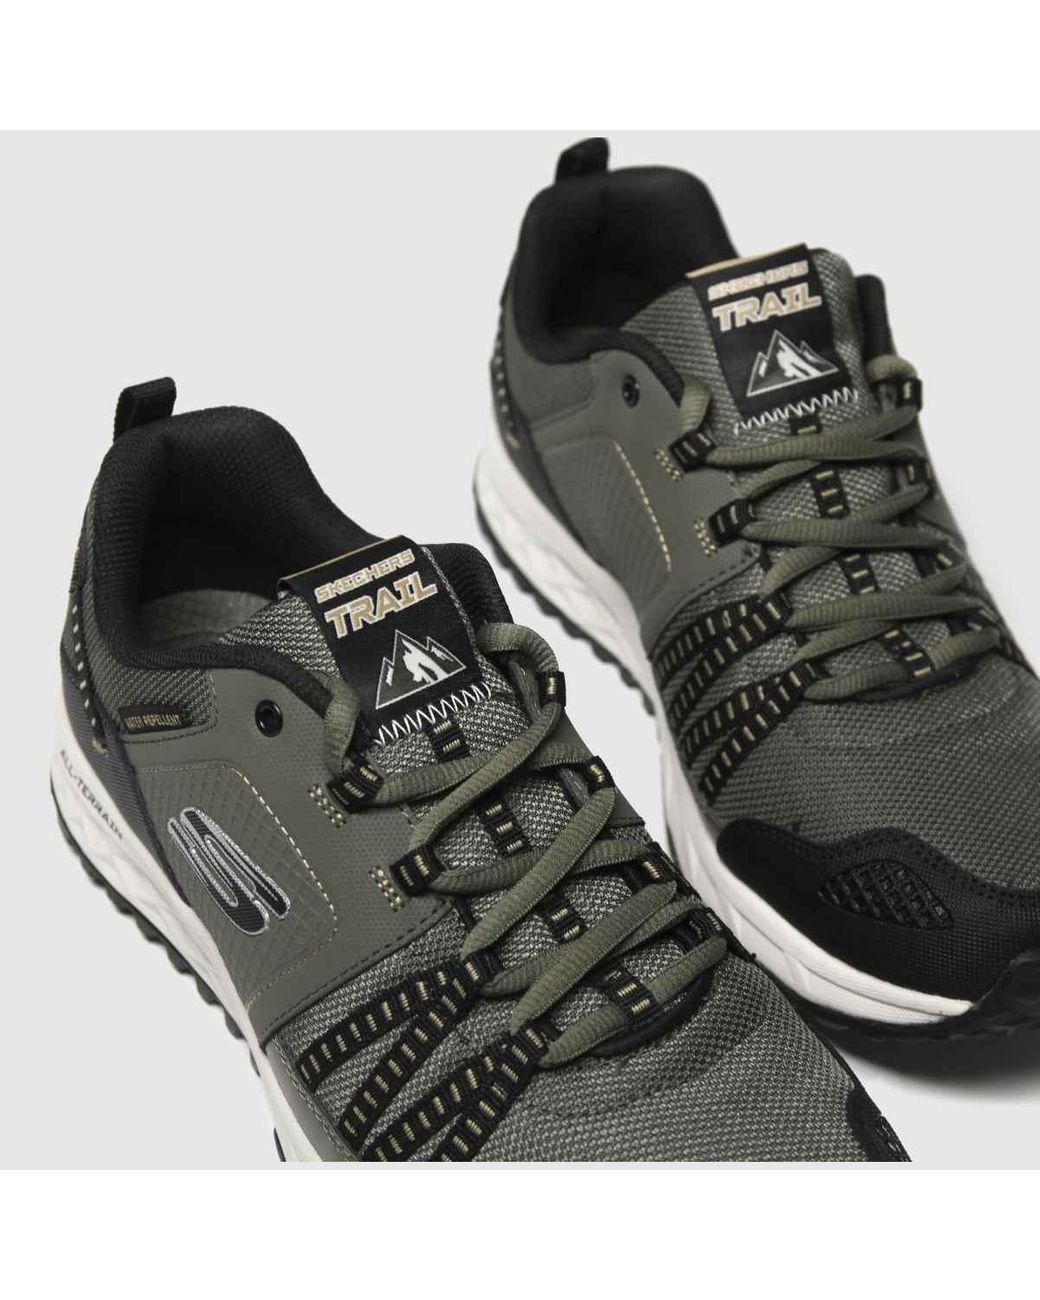 Skechers Mens 2019 Track Scloric Lightweight Trainers 30/% OFF RRP